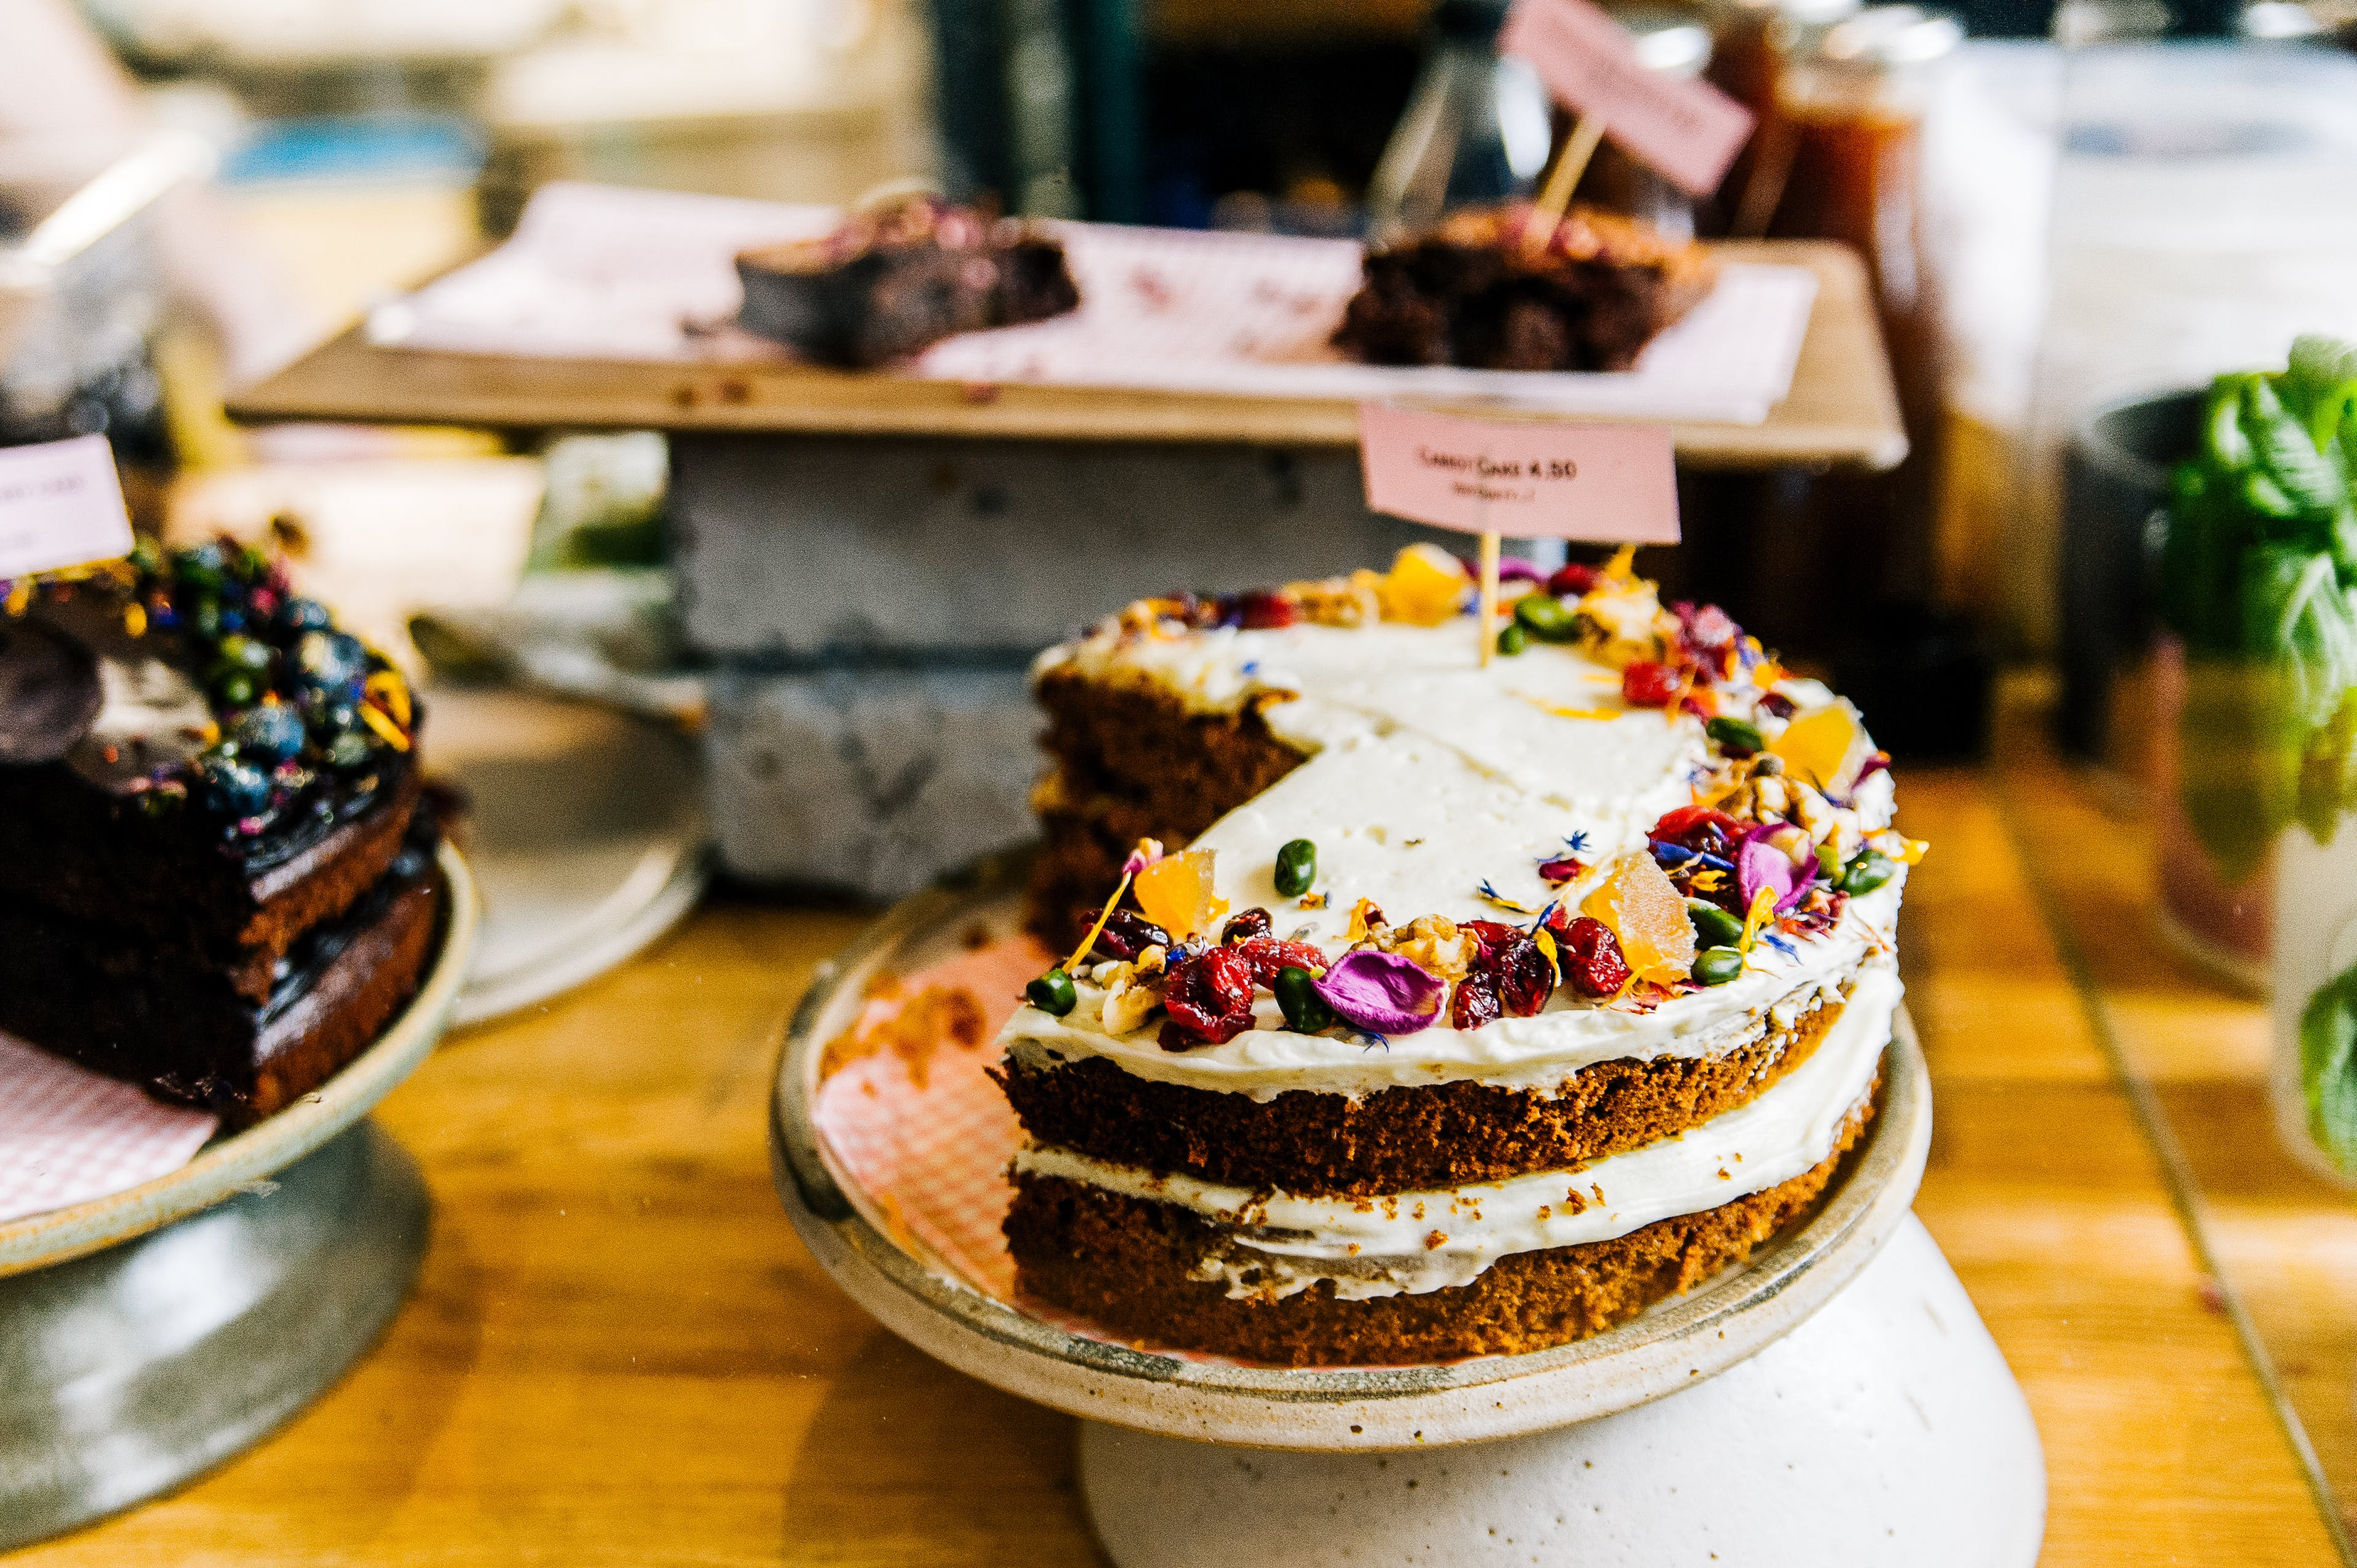 Baked Cake With Candies on Top